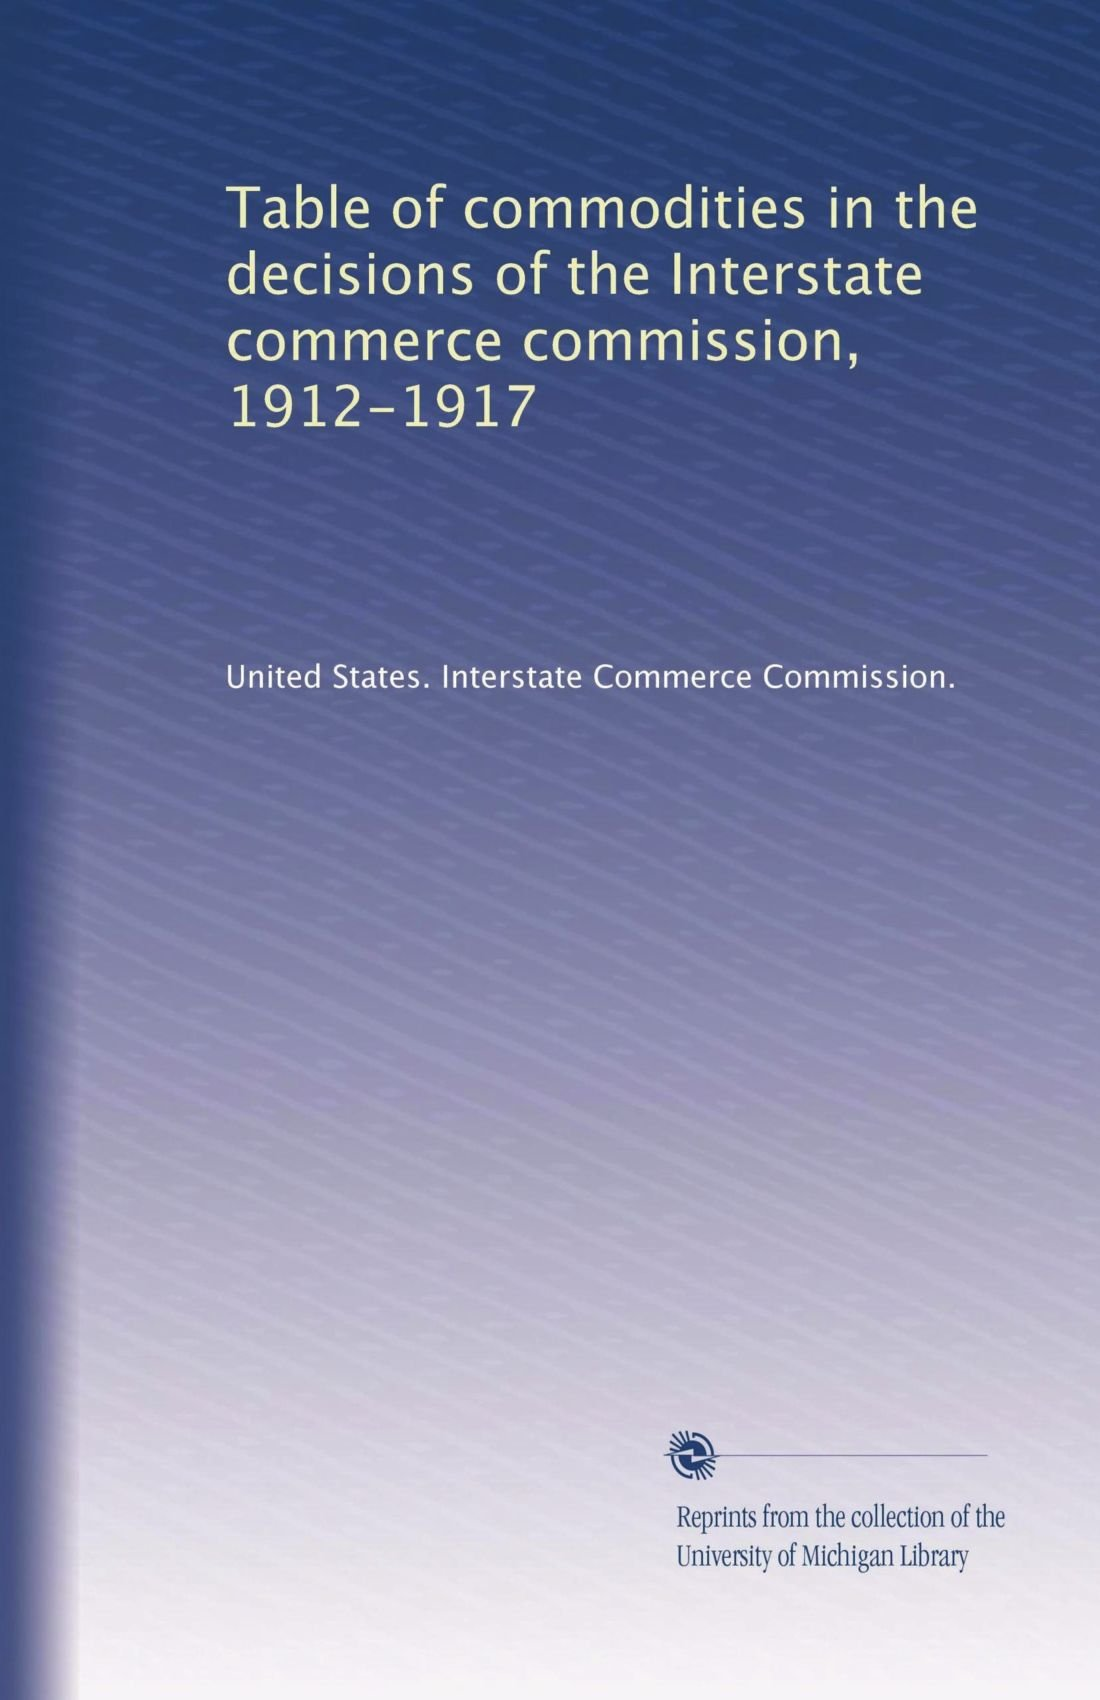 Download Table of commodities in the decisions of the Interstate commerce commission, 1912-1917 pdf